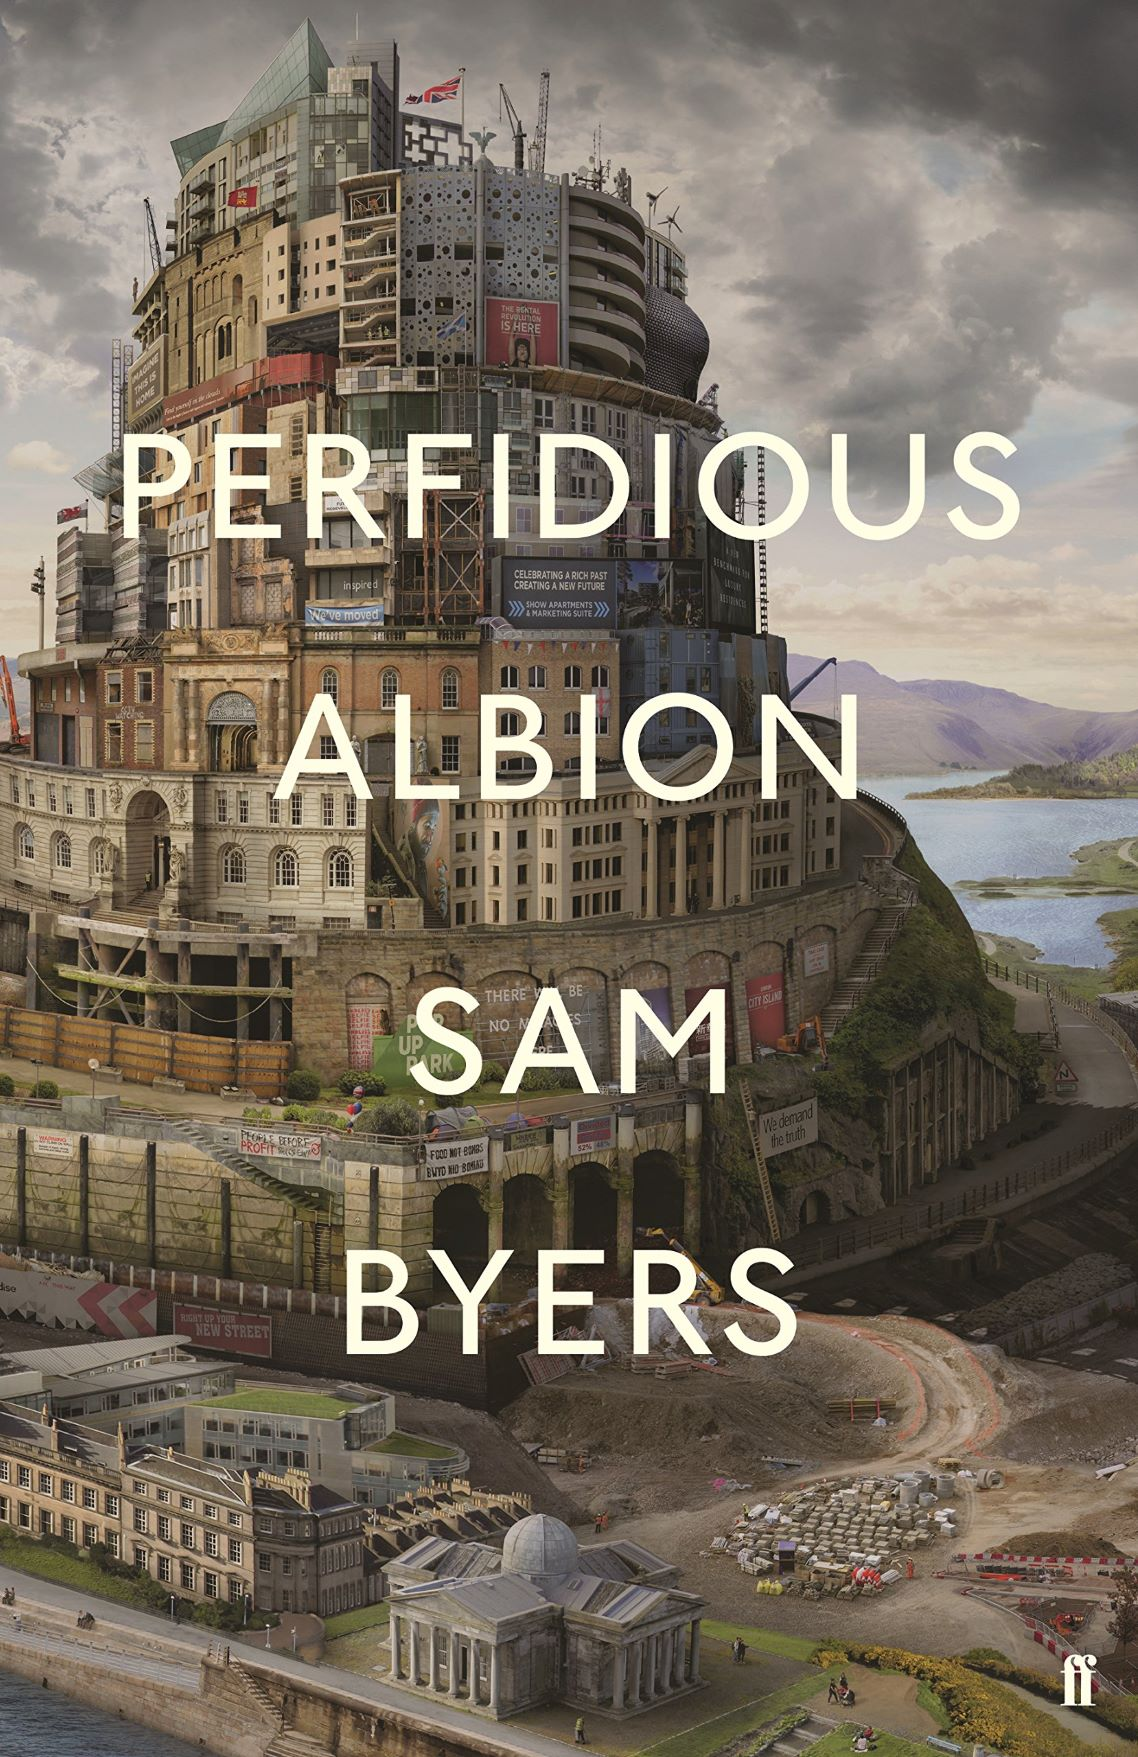 Perfidious Albion book cover